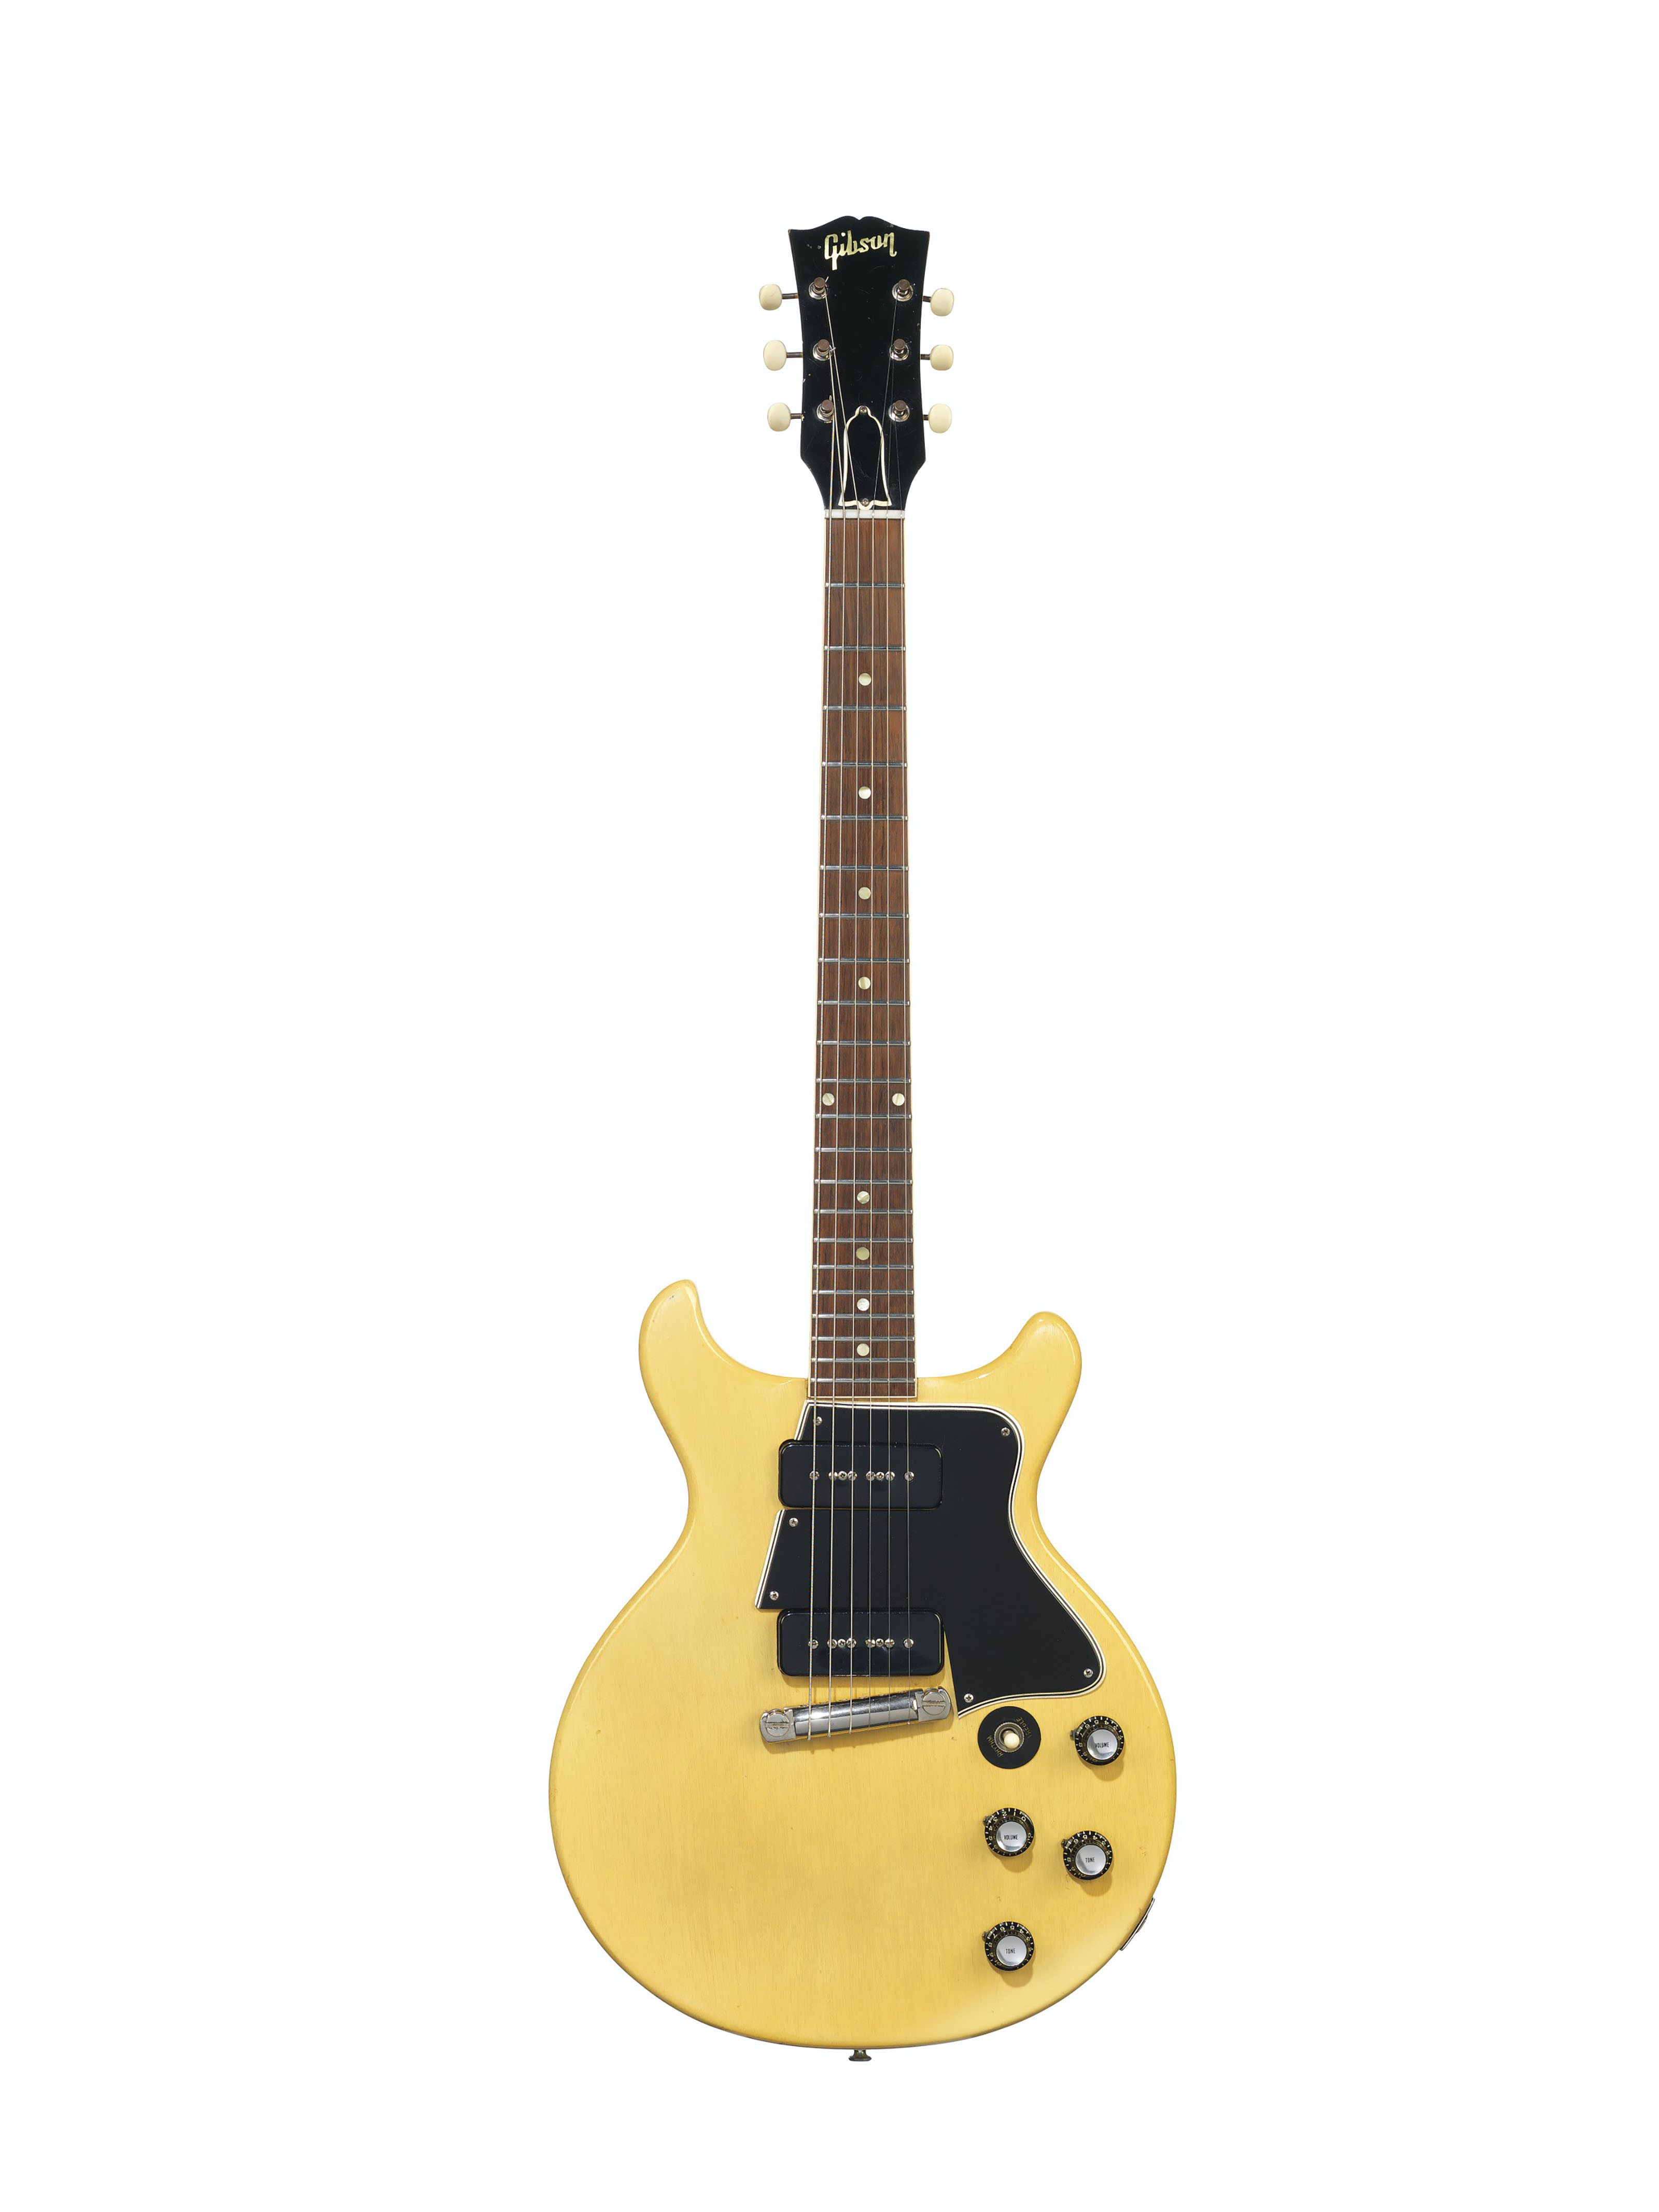 GIBSON INCORPORATED, KALAMAZOO, 1960 | A SOLID-BODY ELECTRIC